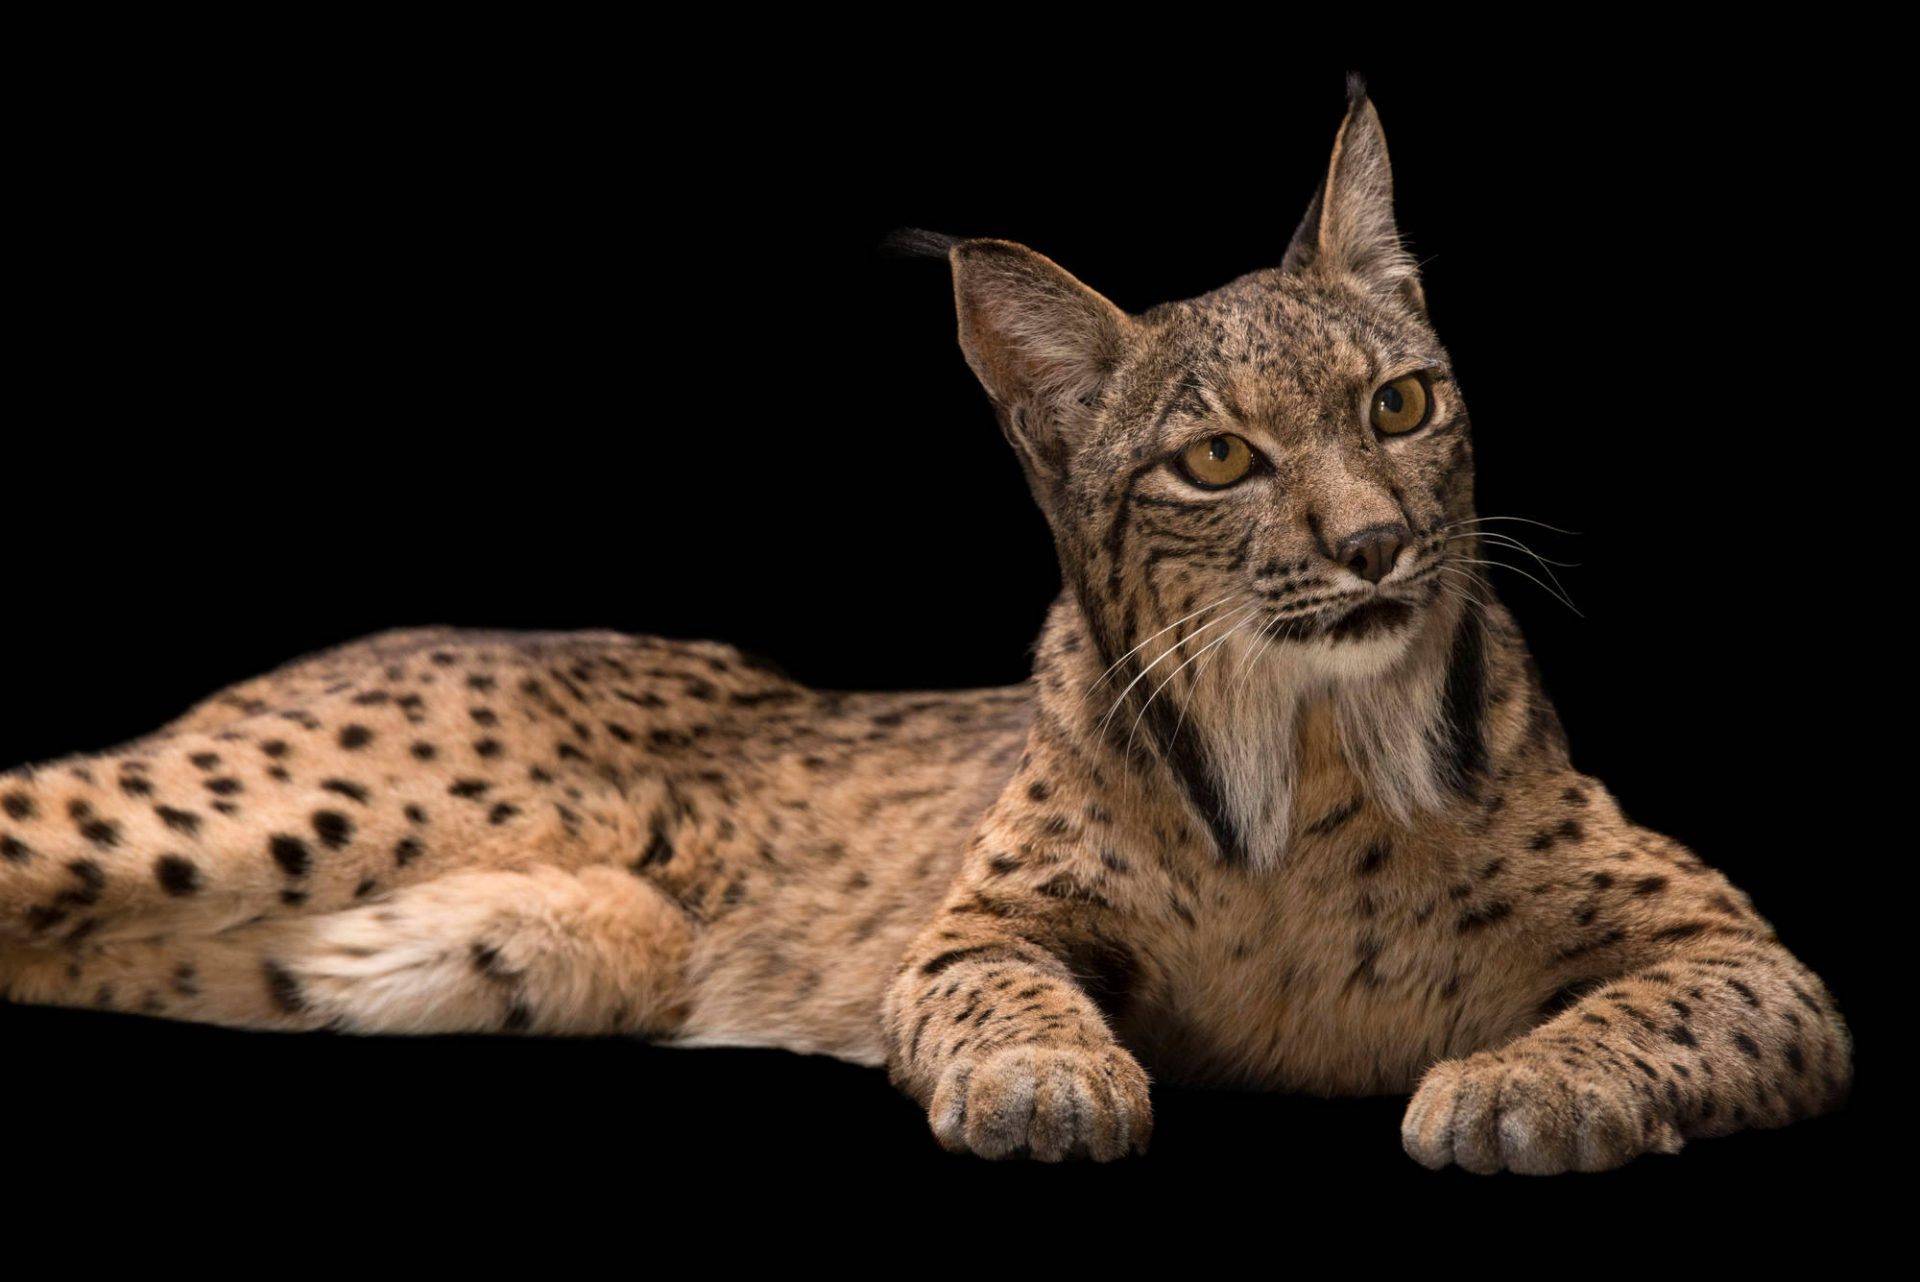 Picture of an endangered Iberian lynx (Lynx pardinus) at the Madrid Zoo.